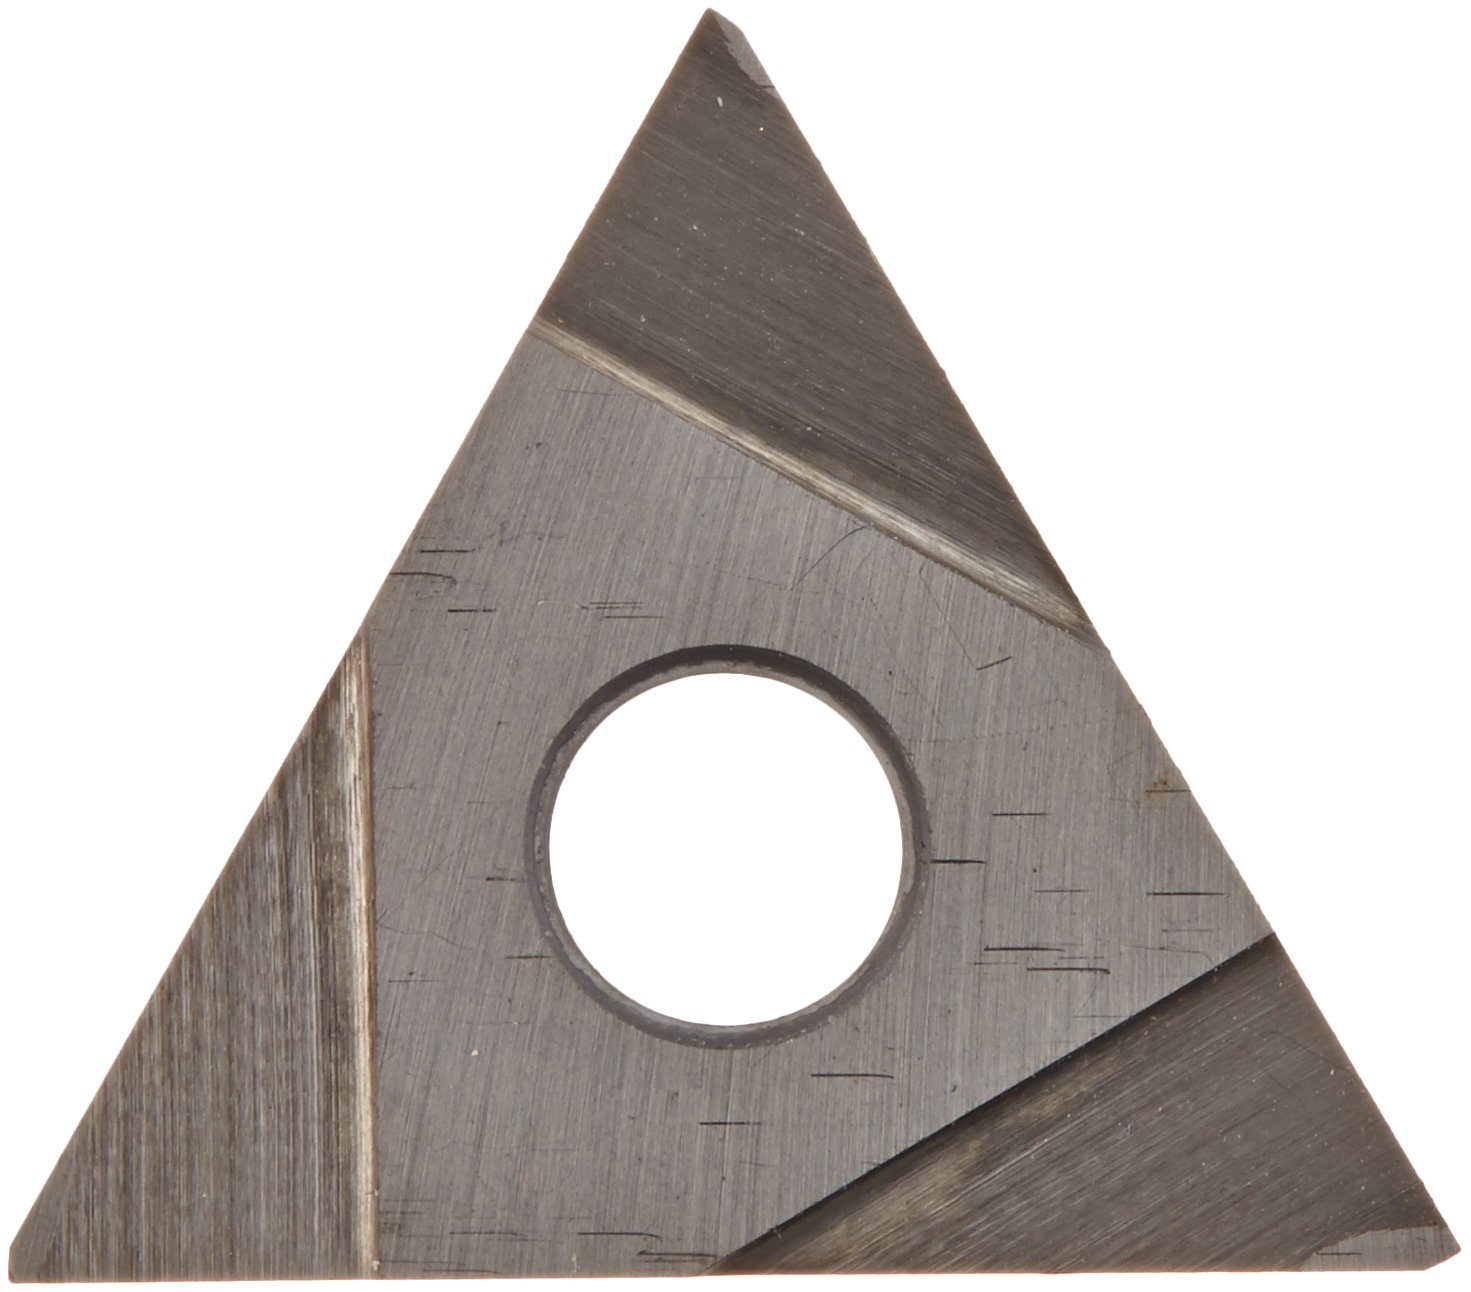 0.094 Cutting Width TNMA Style 0 Degrees Lead Angle C520 Grade Pack of 10 Cobra Carbide 44034 On-Edge Solid Carbide Grooving Insert